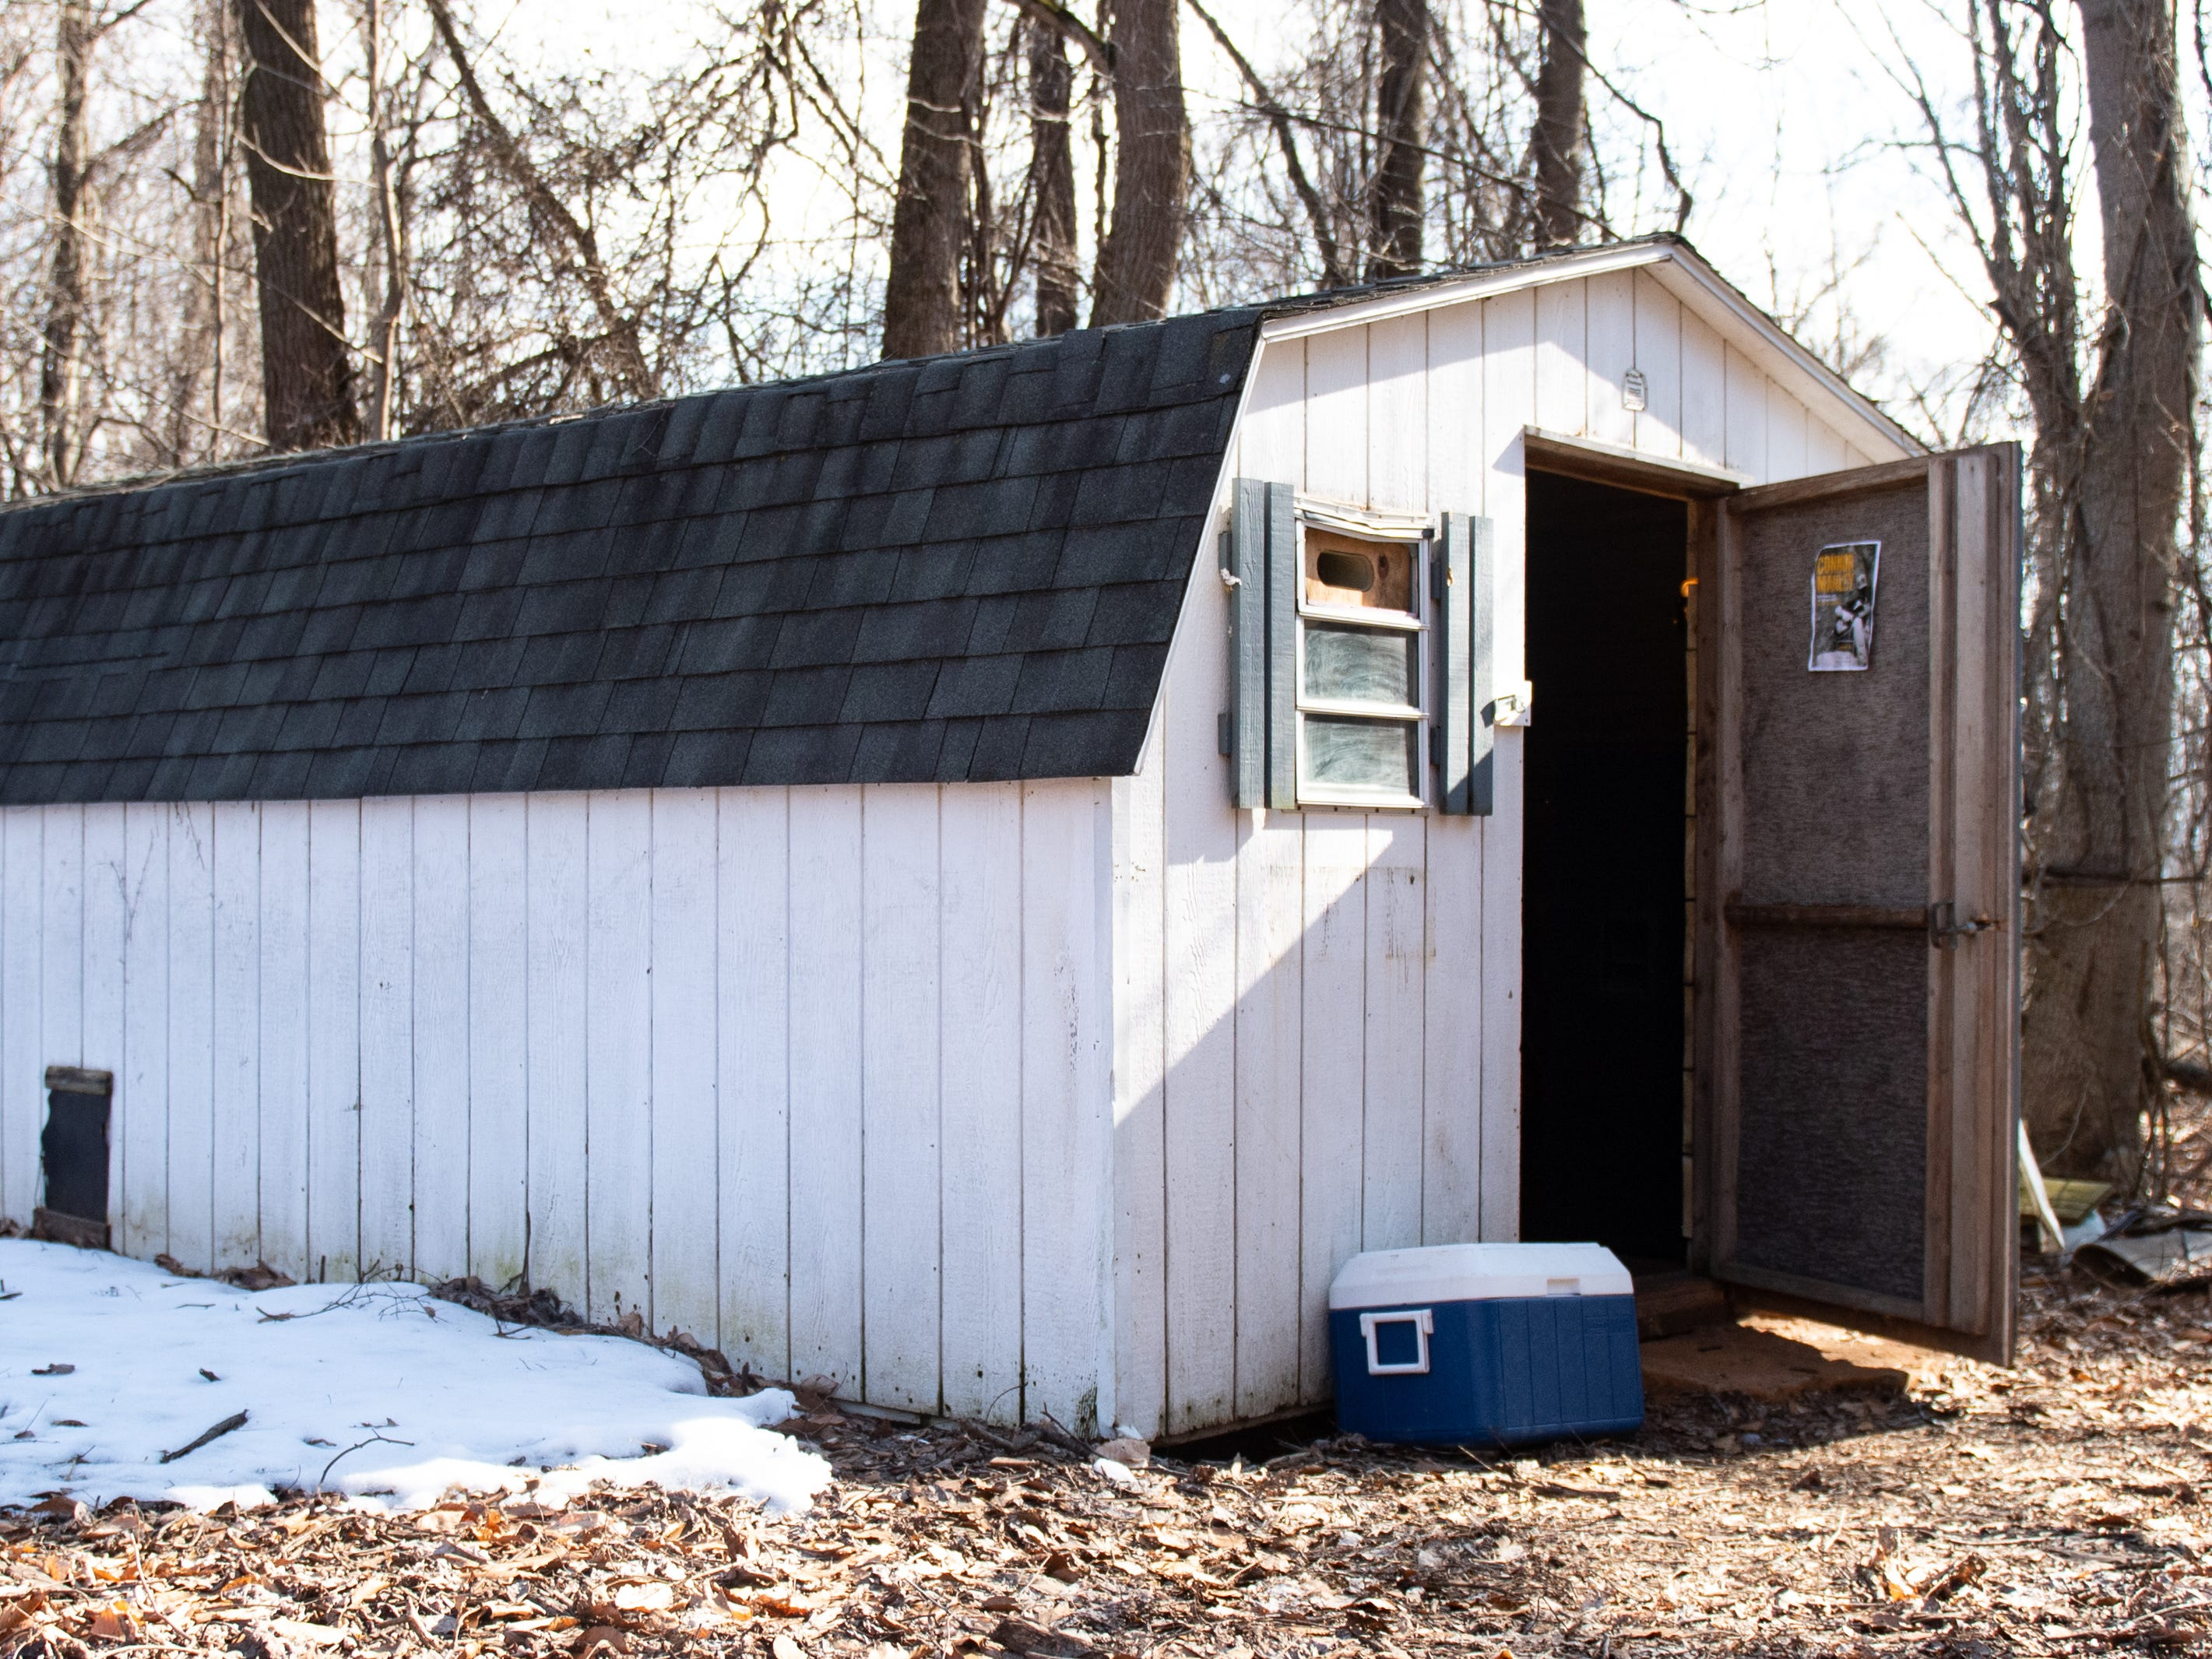 """""""American Idol"""" hopeful Jake Puliti and his three friends, Connor Manley, Grant Moore and Weston Branter, converted the inside of this chicken coop in Newberry Township into a music studio. It now houses everything the musicians need to hone their craft."""